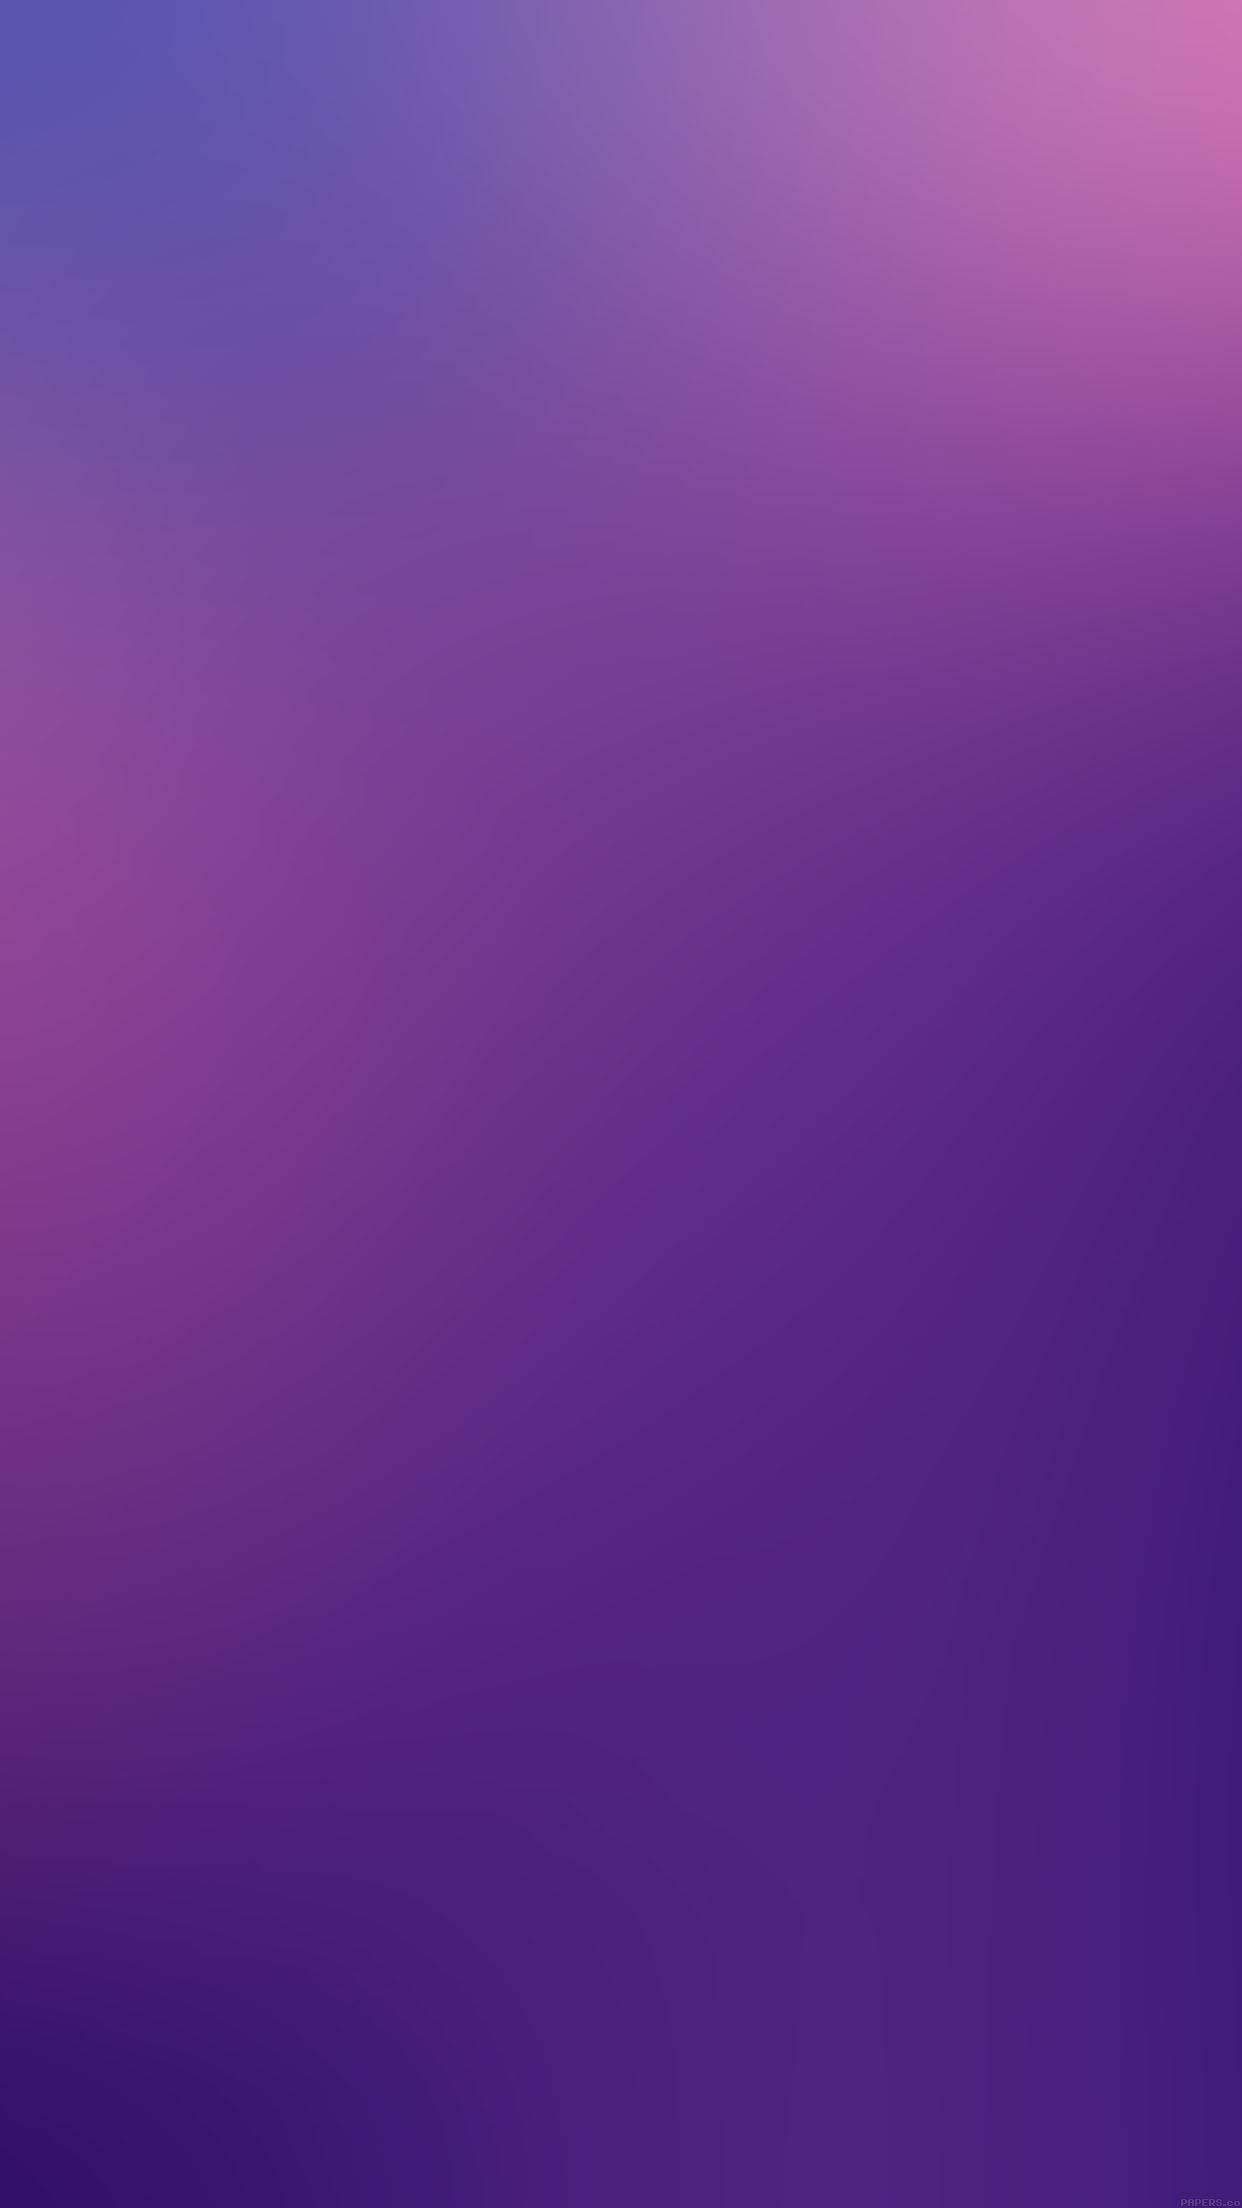 Cute Pink Wallpapers For Samsung Galaxy Y Sa17 Blurred Purple Papers Co